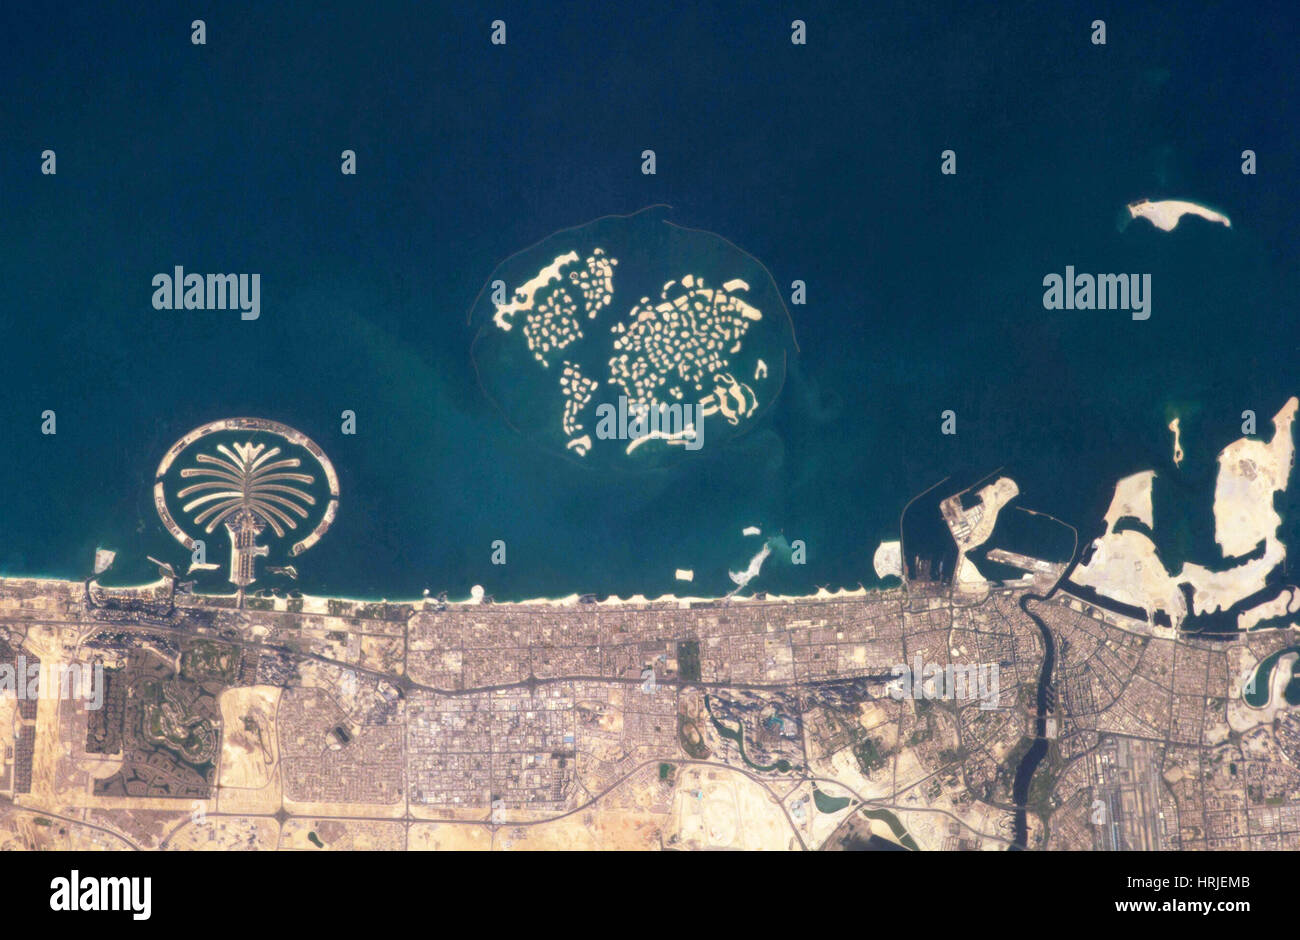 Man-made Islands, Dubai, UAE - Stock Image